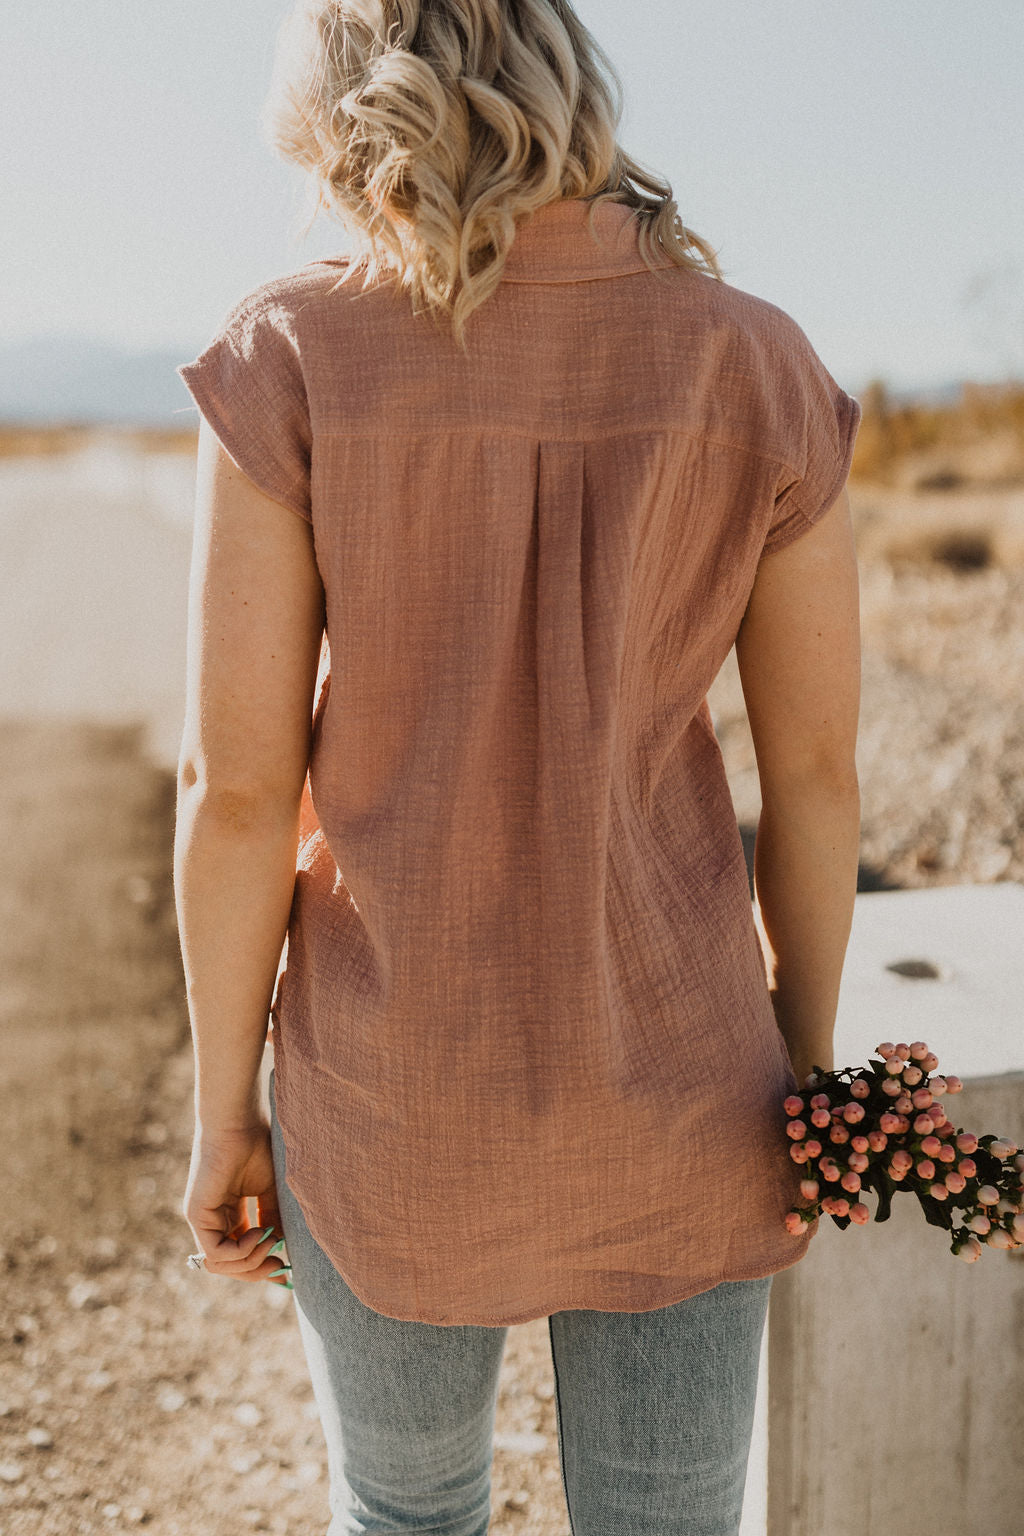 THE THATCHER BUTTON DOWN TOP IN DESERT ROSE